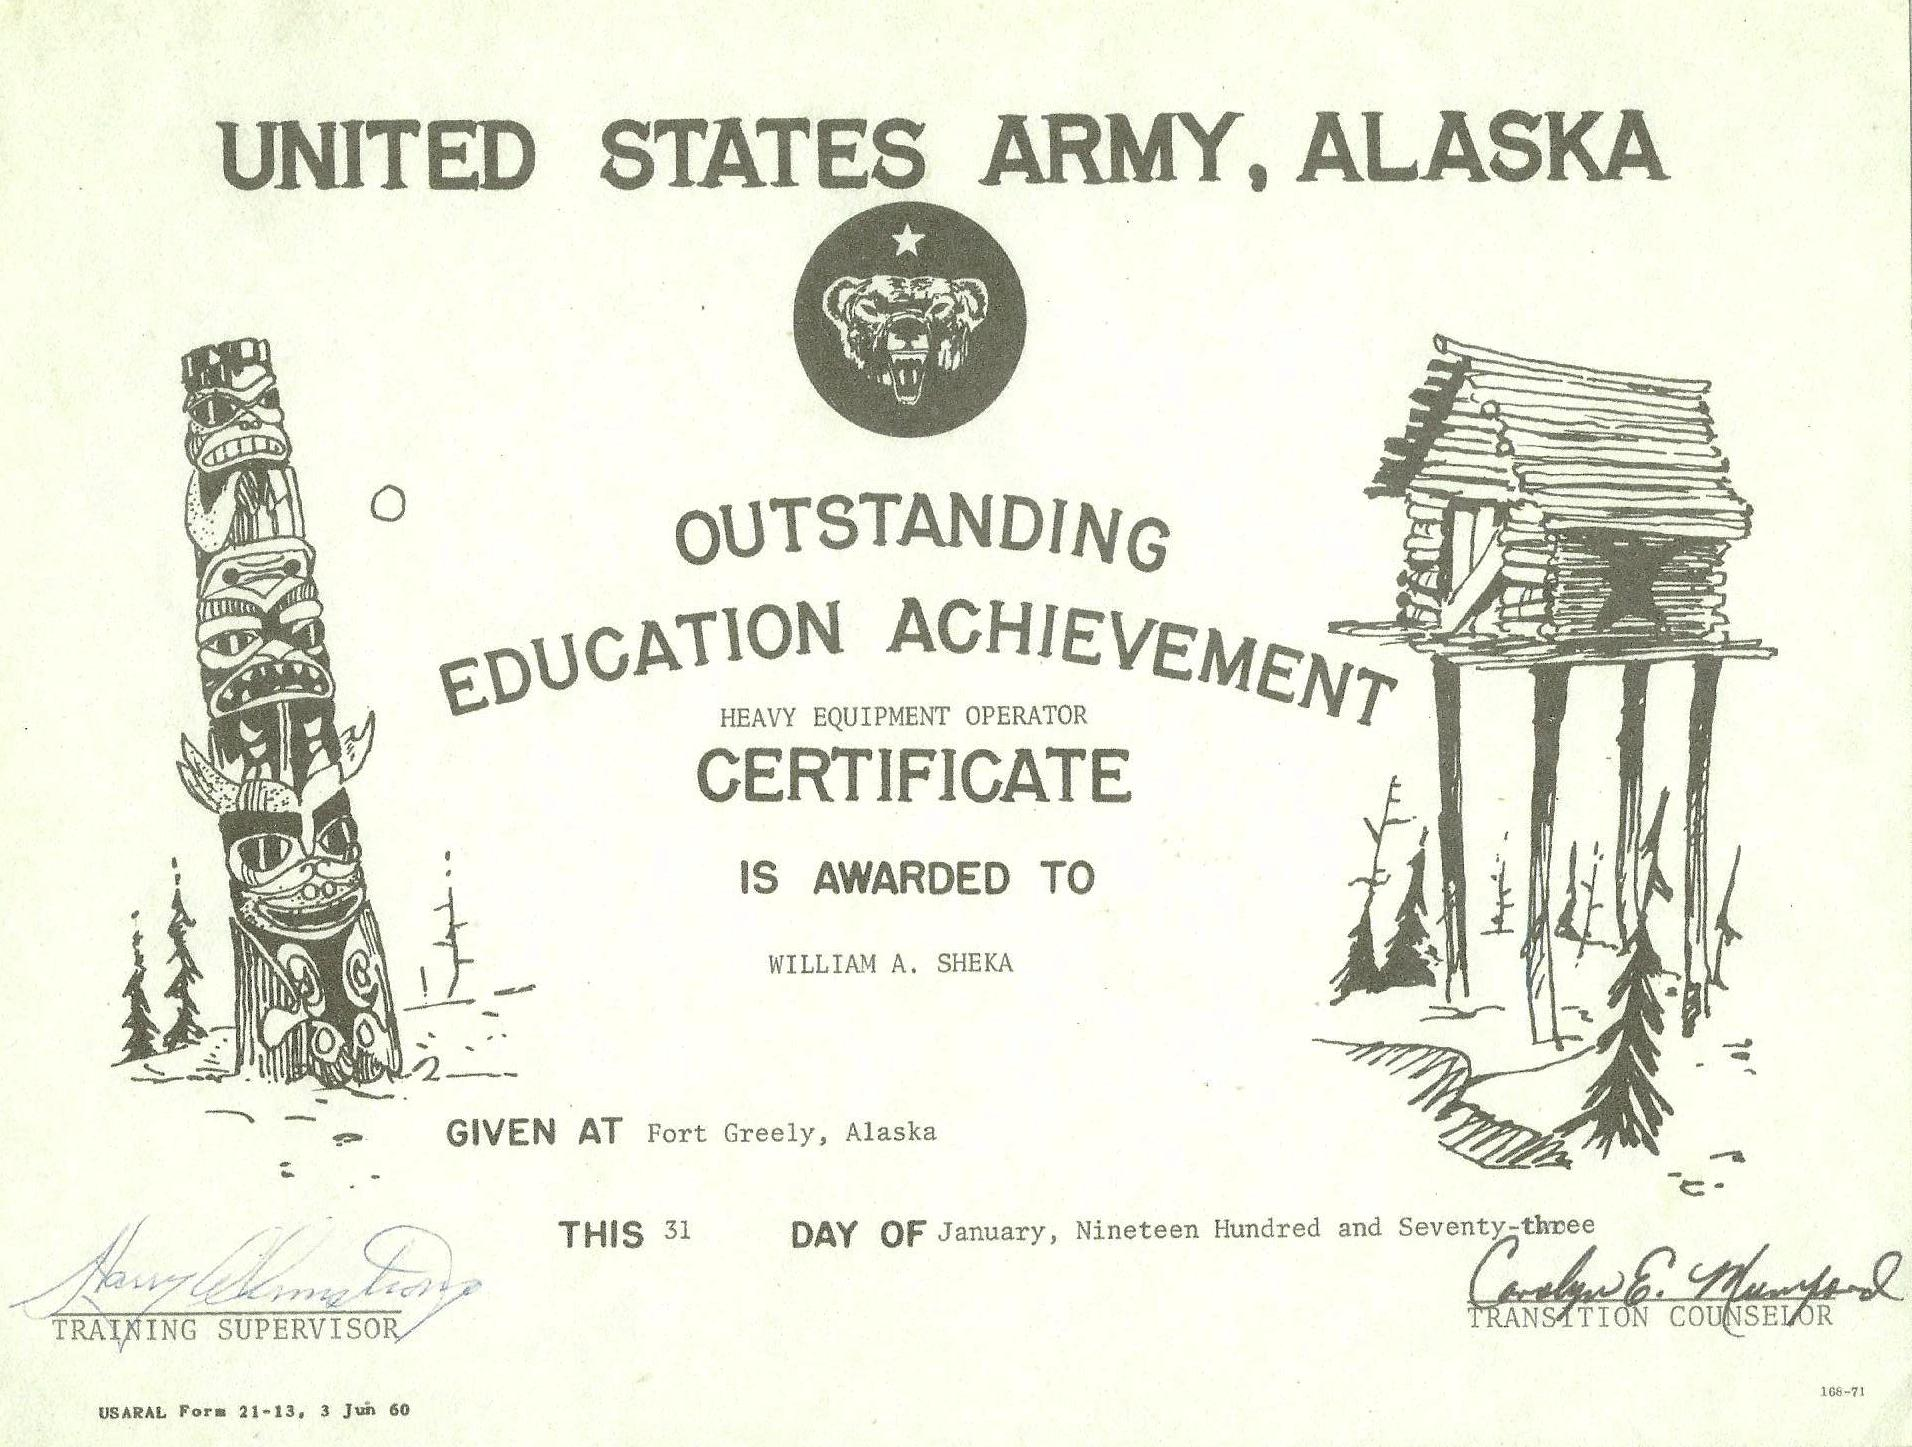 united-states-army-outstanding-education-achievement-certificate-for-heavy-equipment-operator-to-william-a-sheka-31-jan-1973